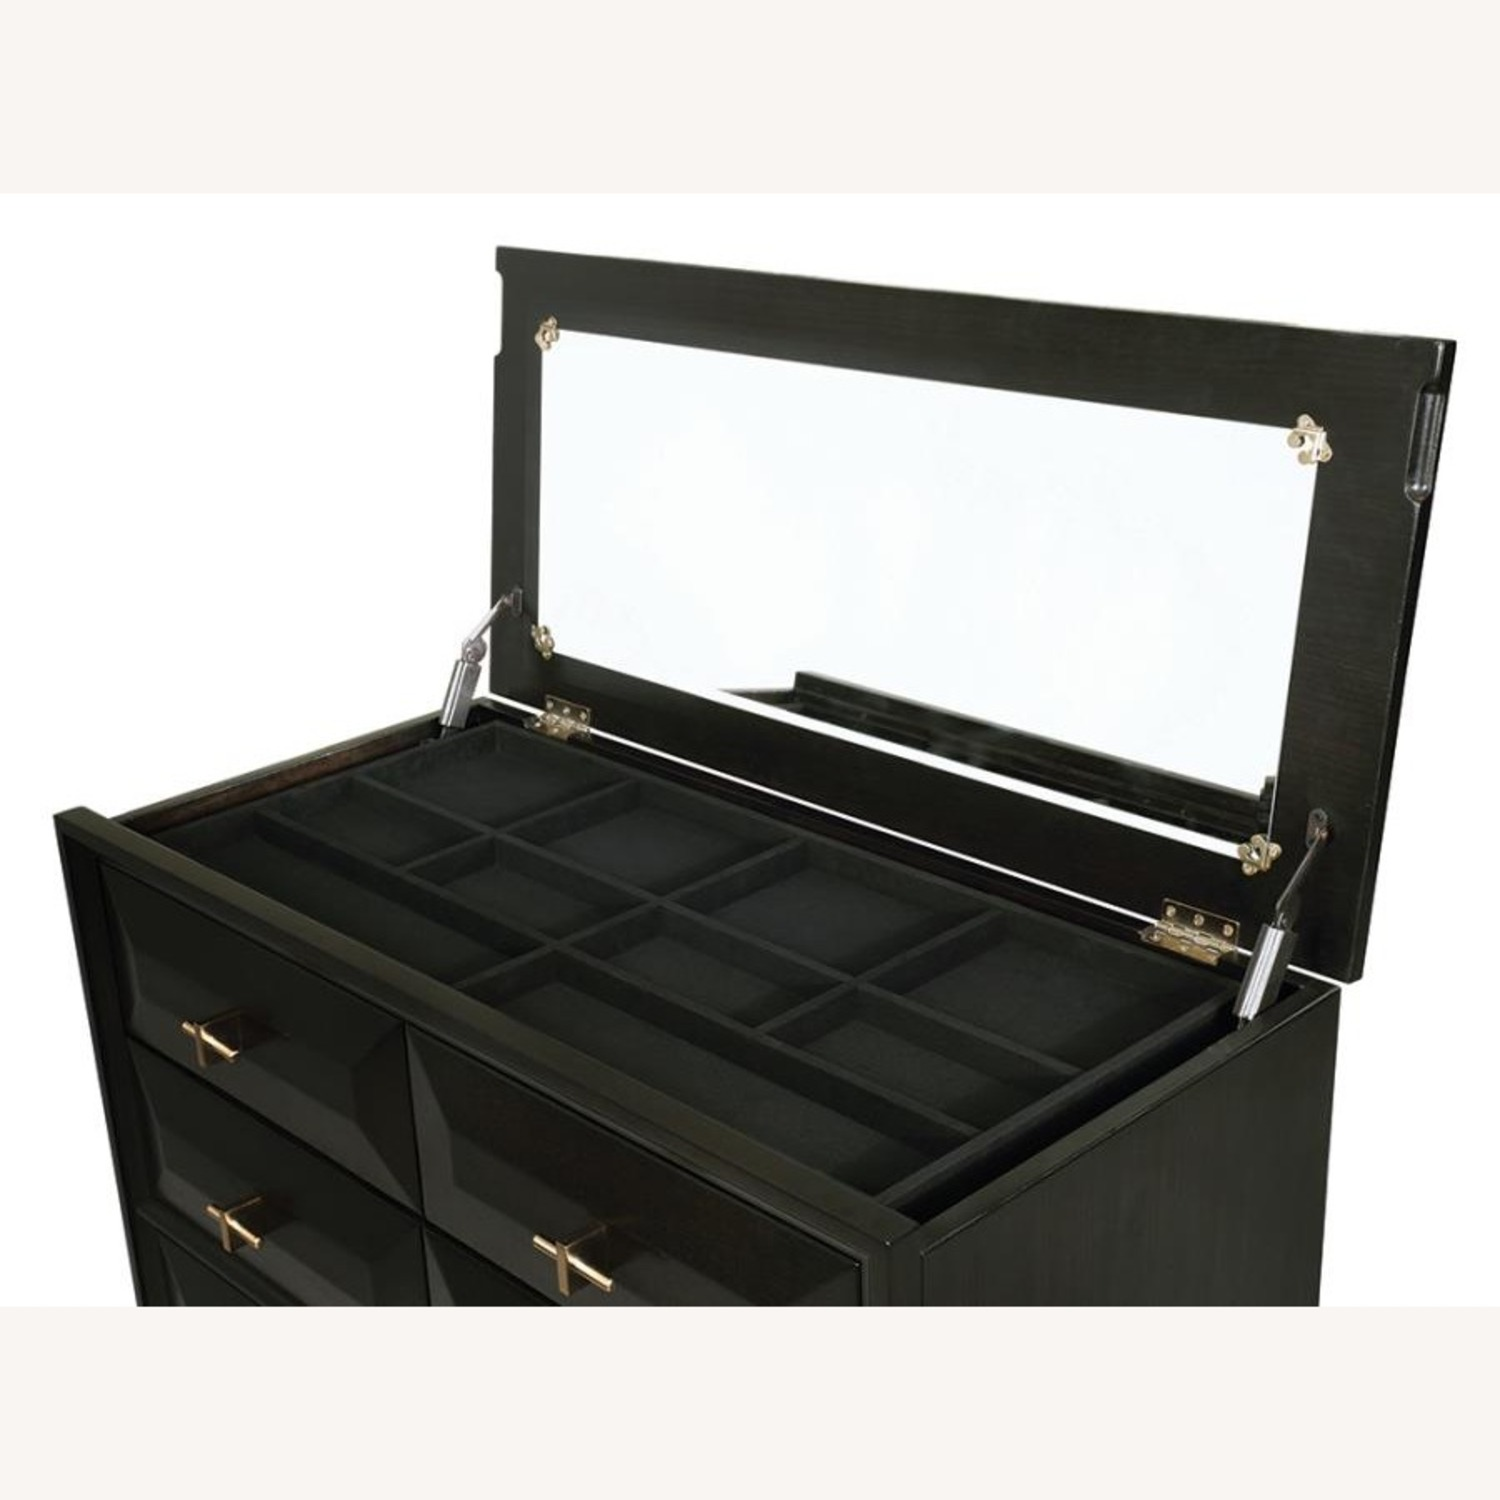 Chest In Americano Finish W/ 8 Drawers - image-1